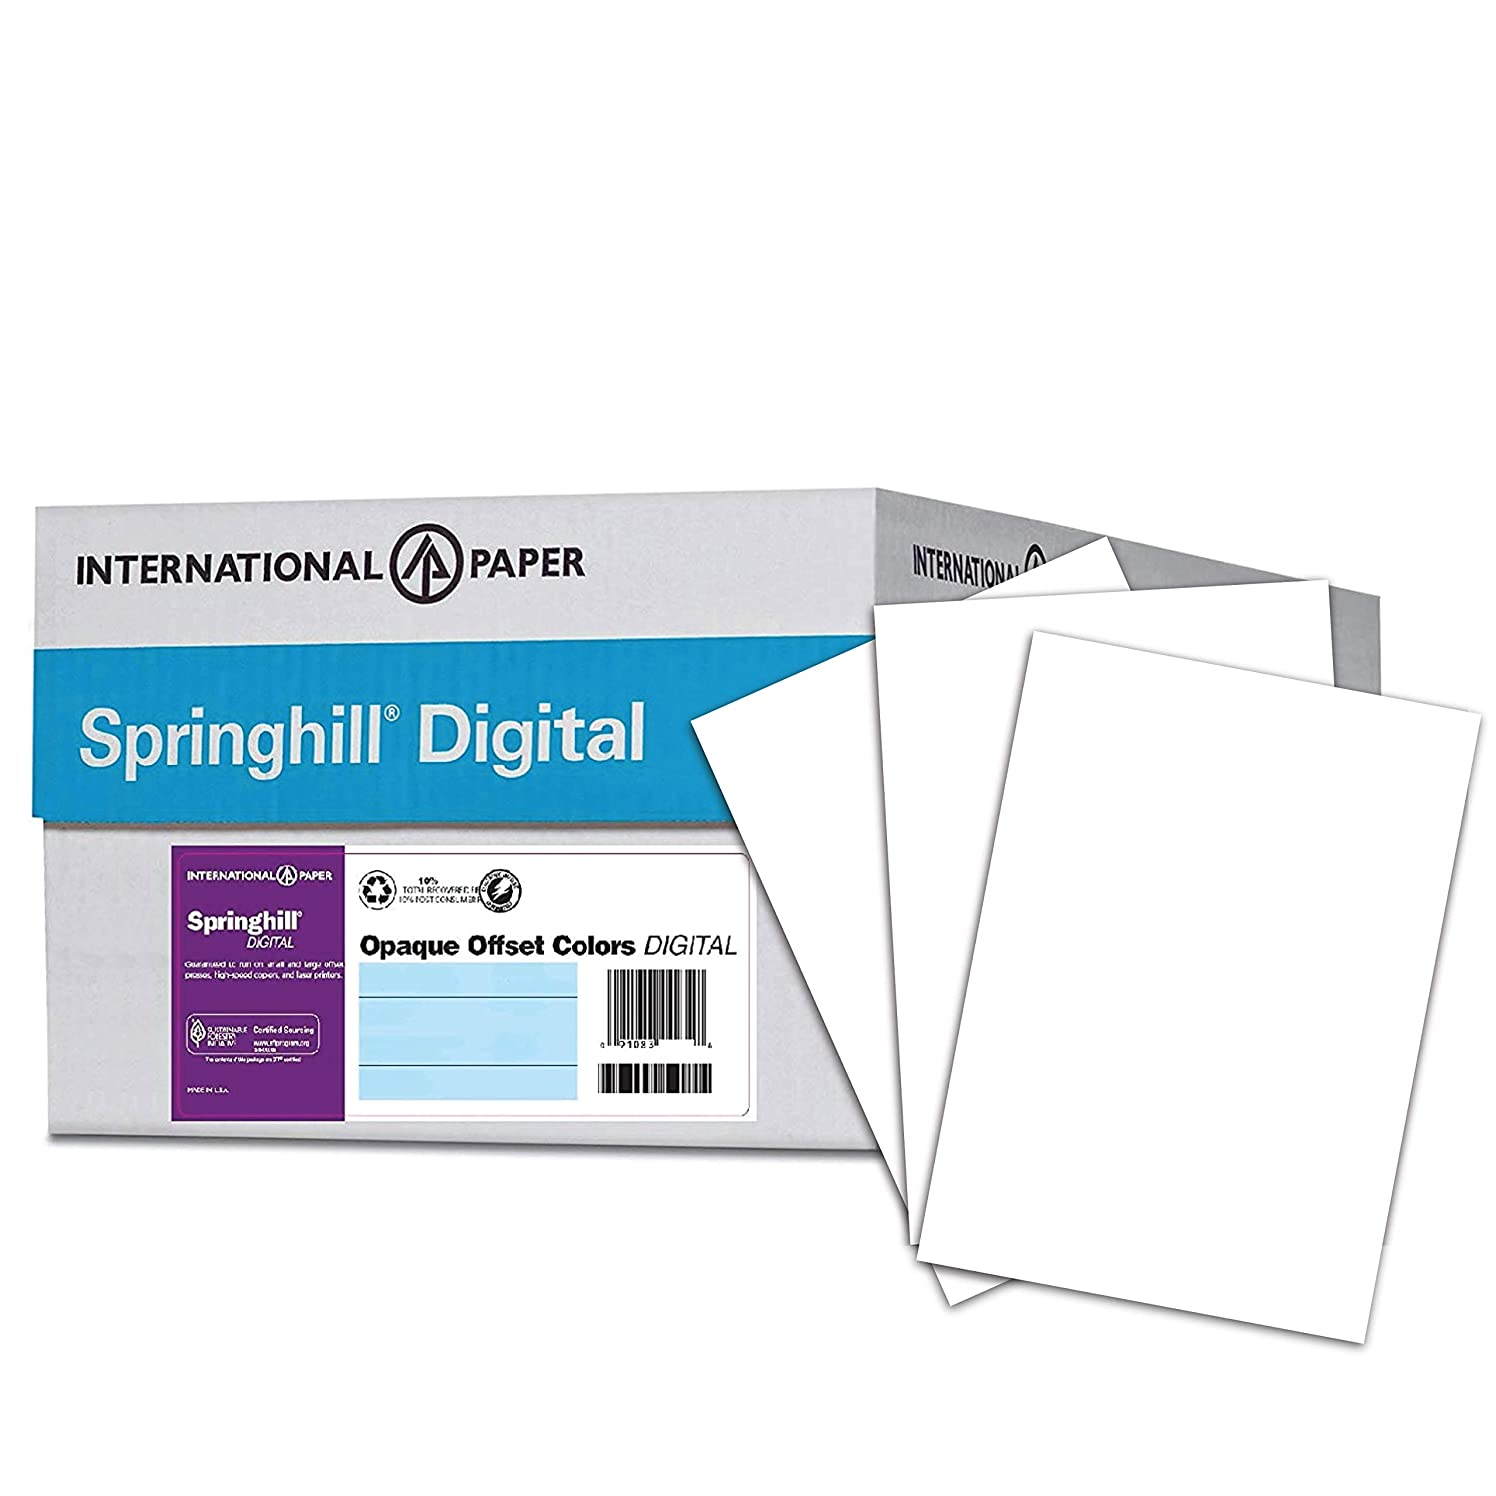 Springhill Cardstock Paper, White Paper, 90lb, 163gsm, 8.5 x 11, 92 Bright, 8 Reams / 2,000 Sheets - Index Card Stock, Thick Paper (015101C)